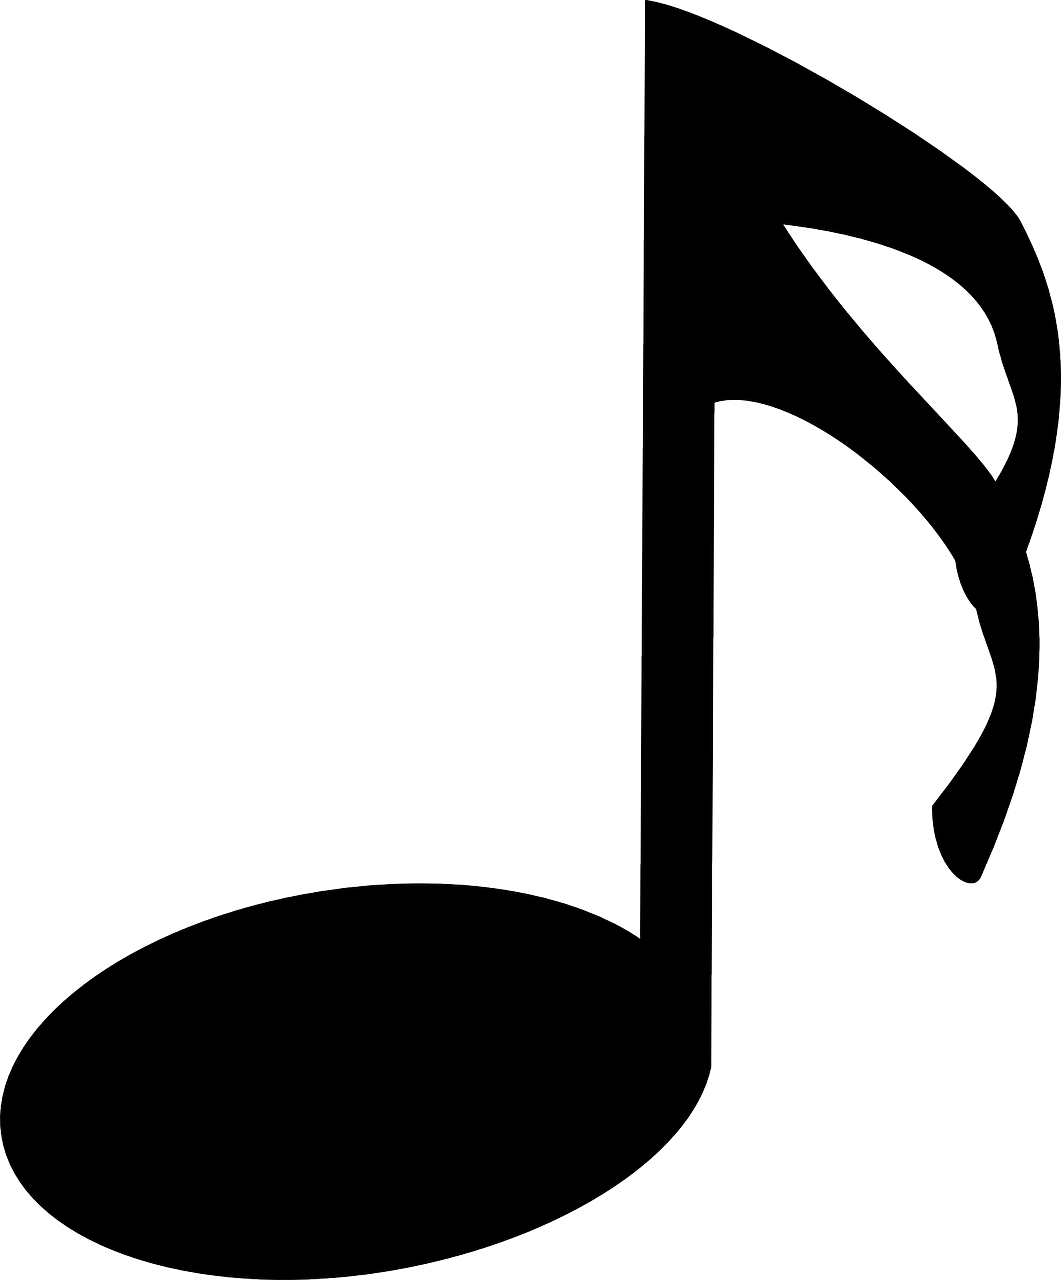 Music Note Melody Symbol Treble